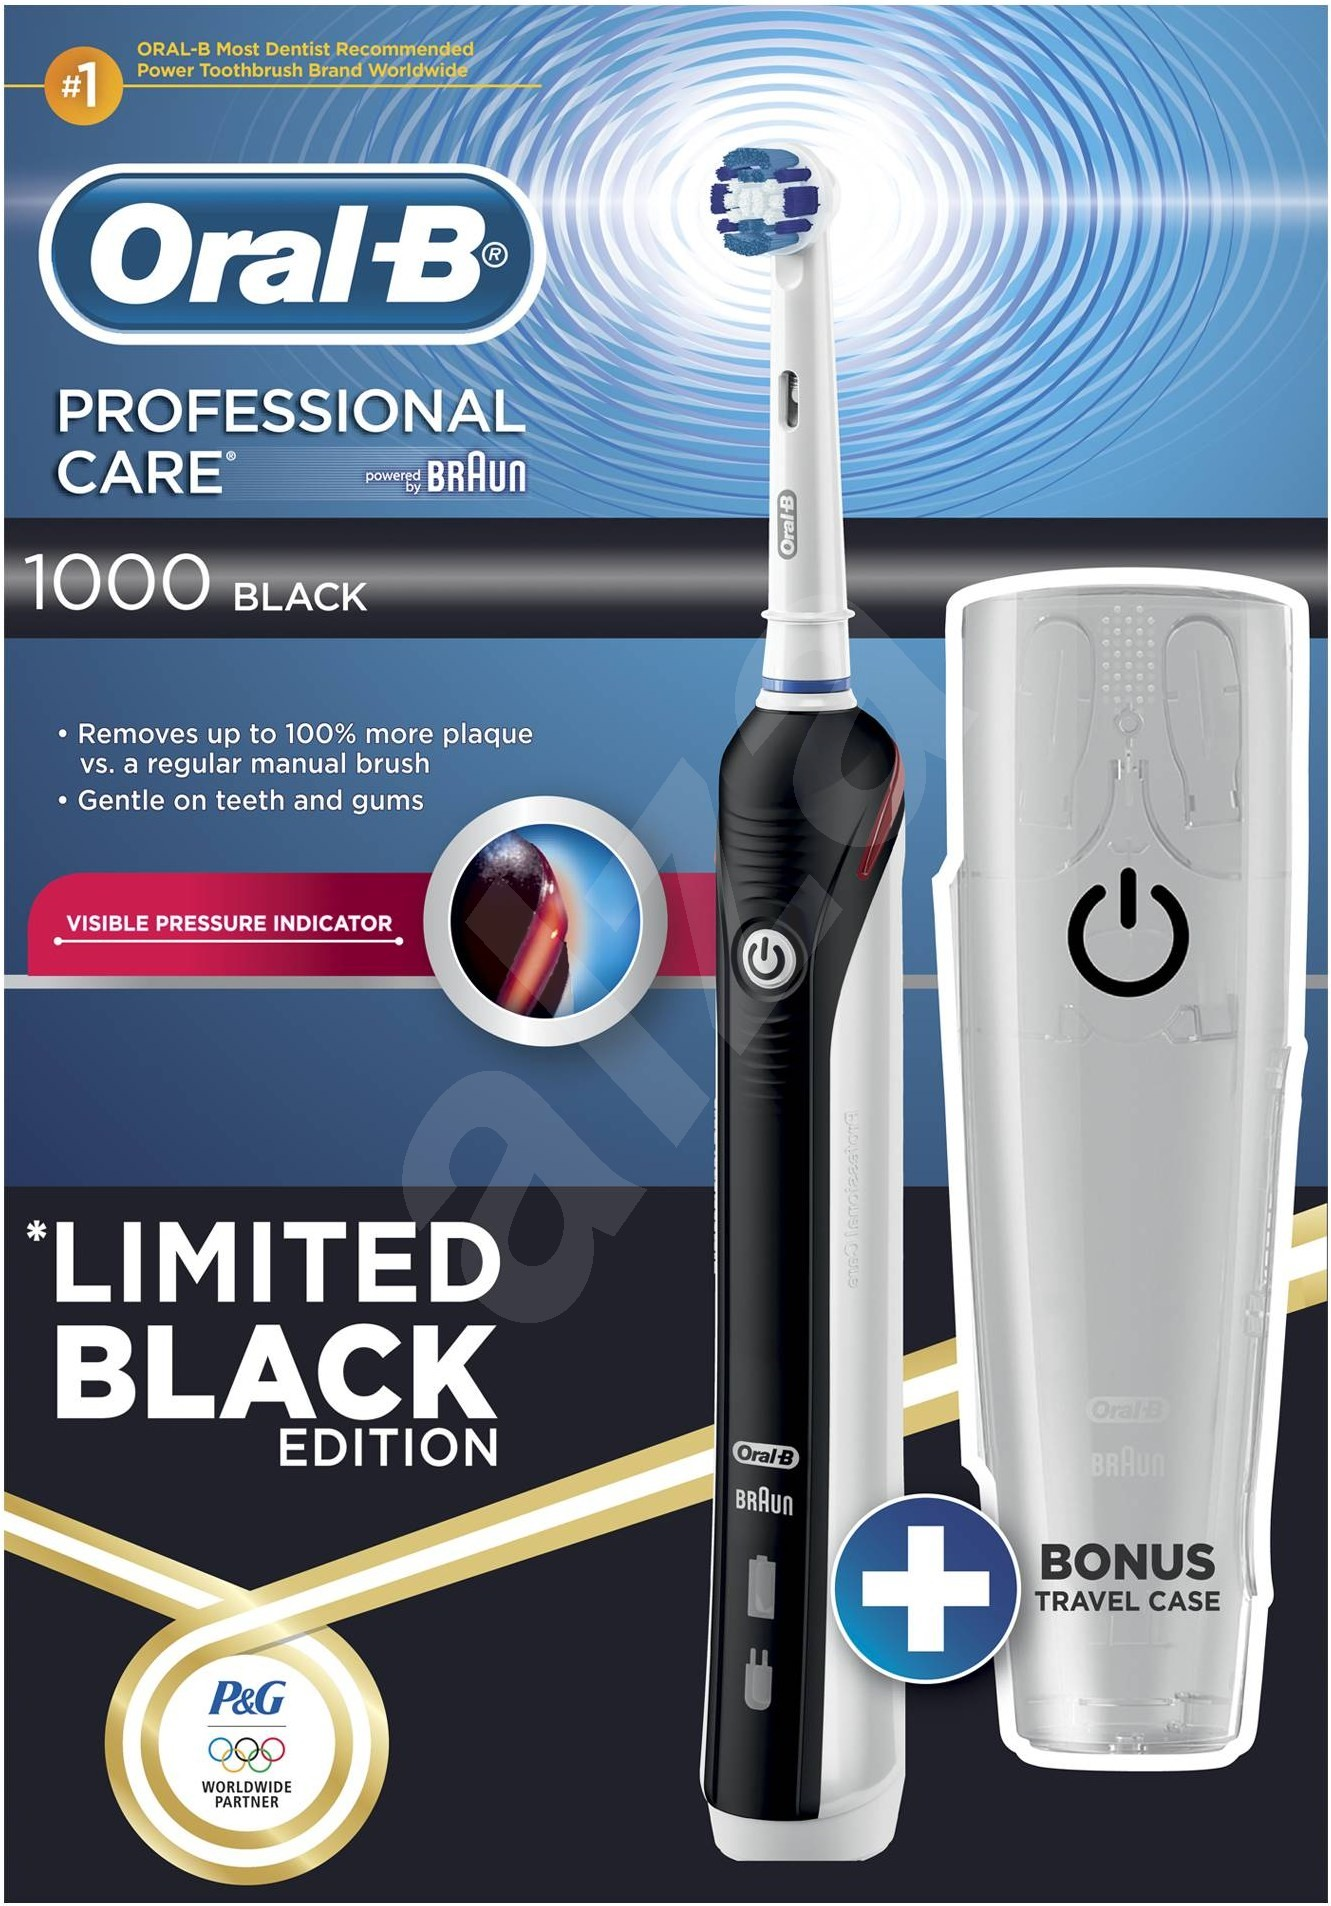 Oral B Professional Care 1000 Black - Electric Toothbrush | Alzashop.com